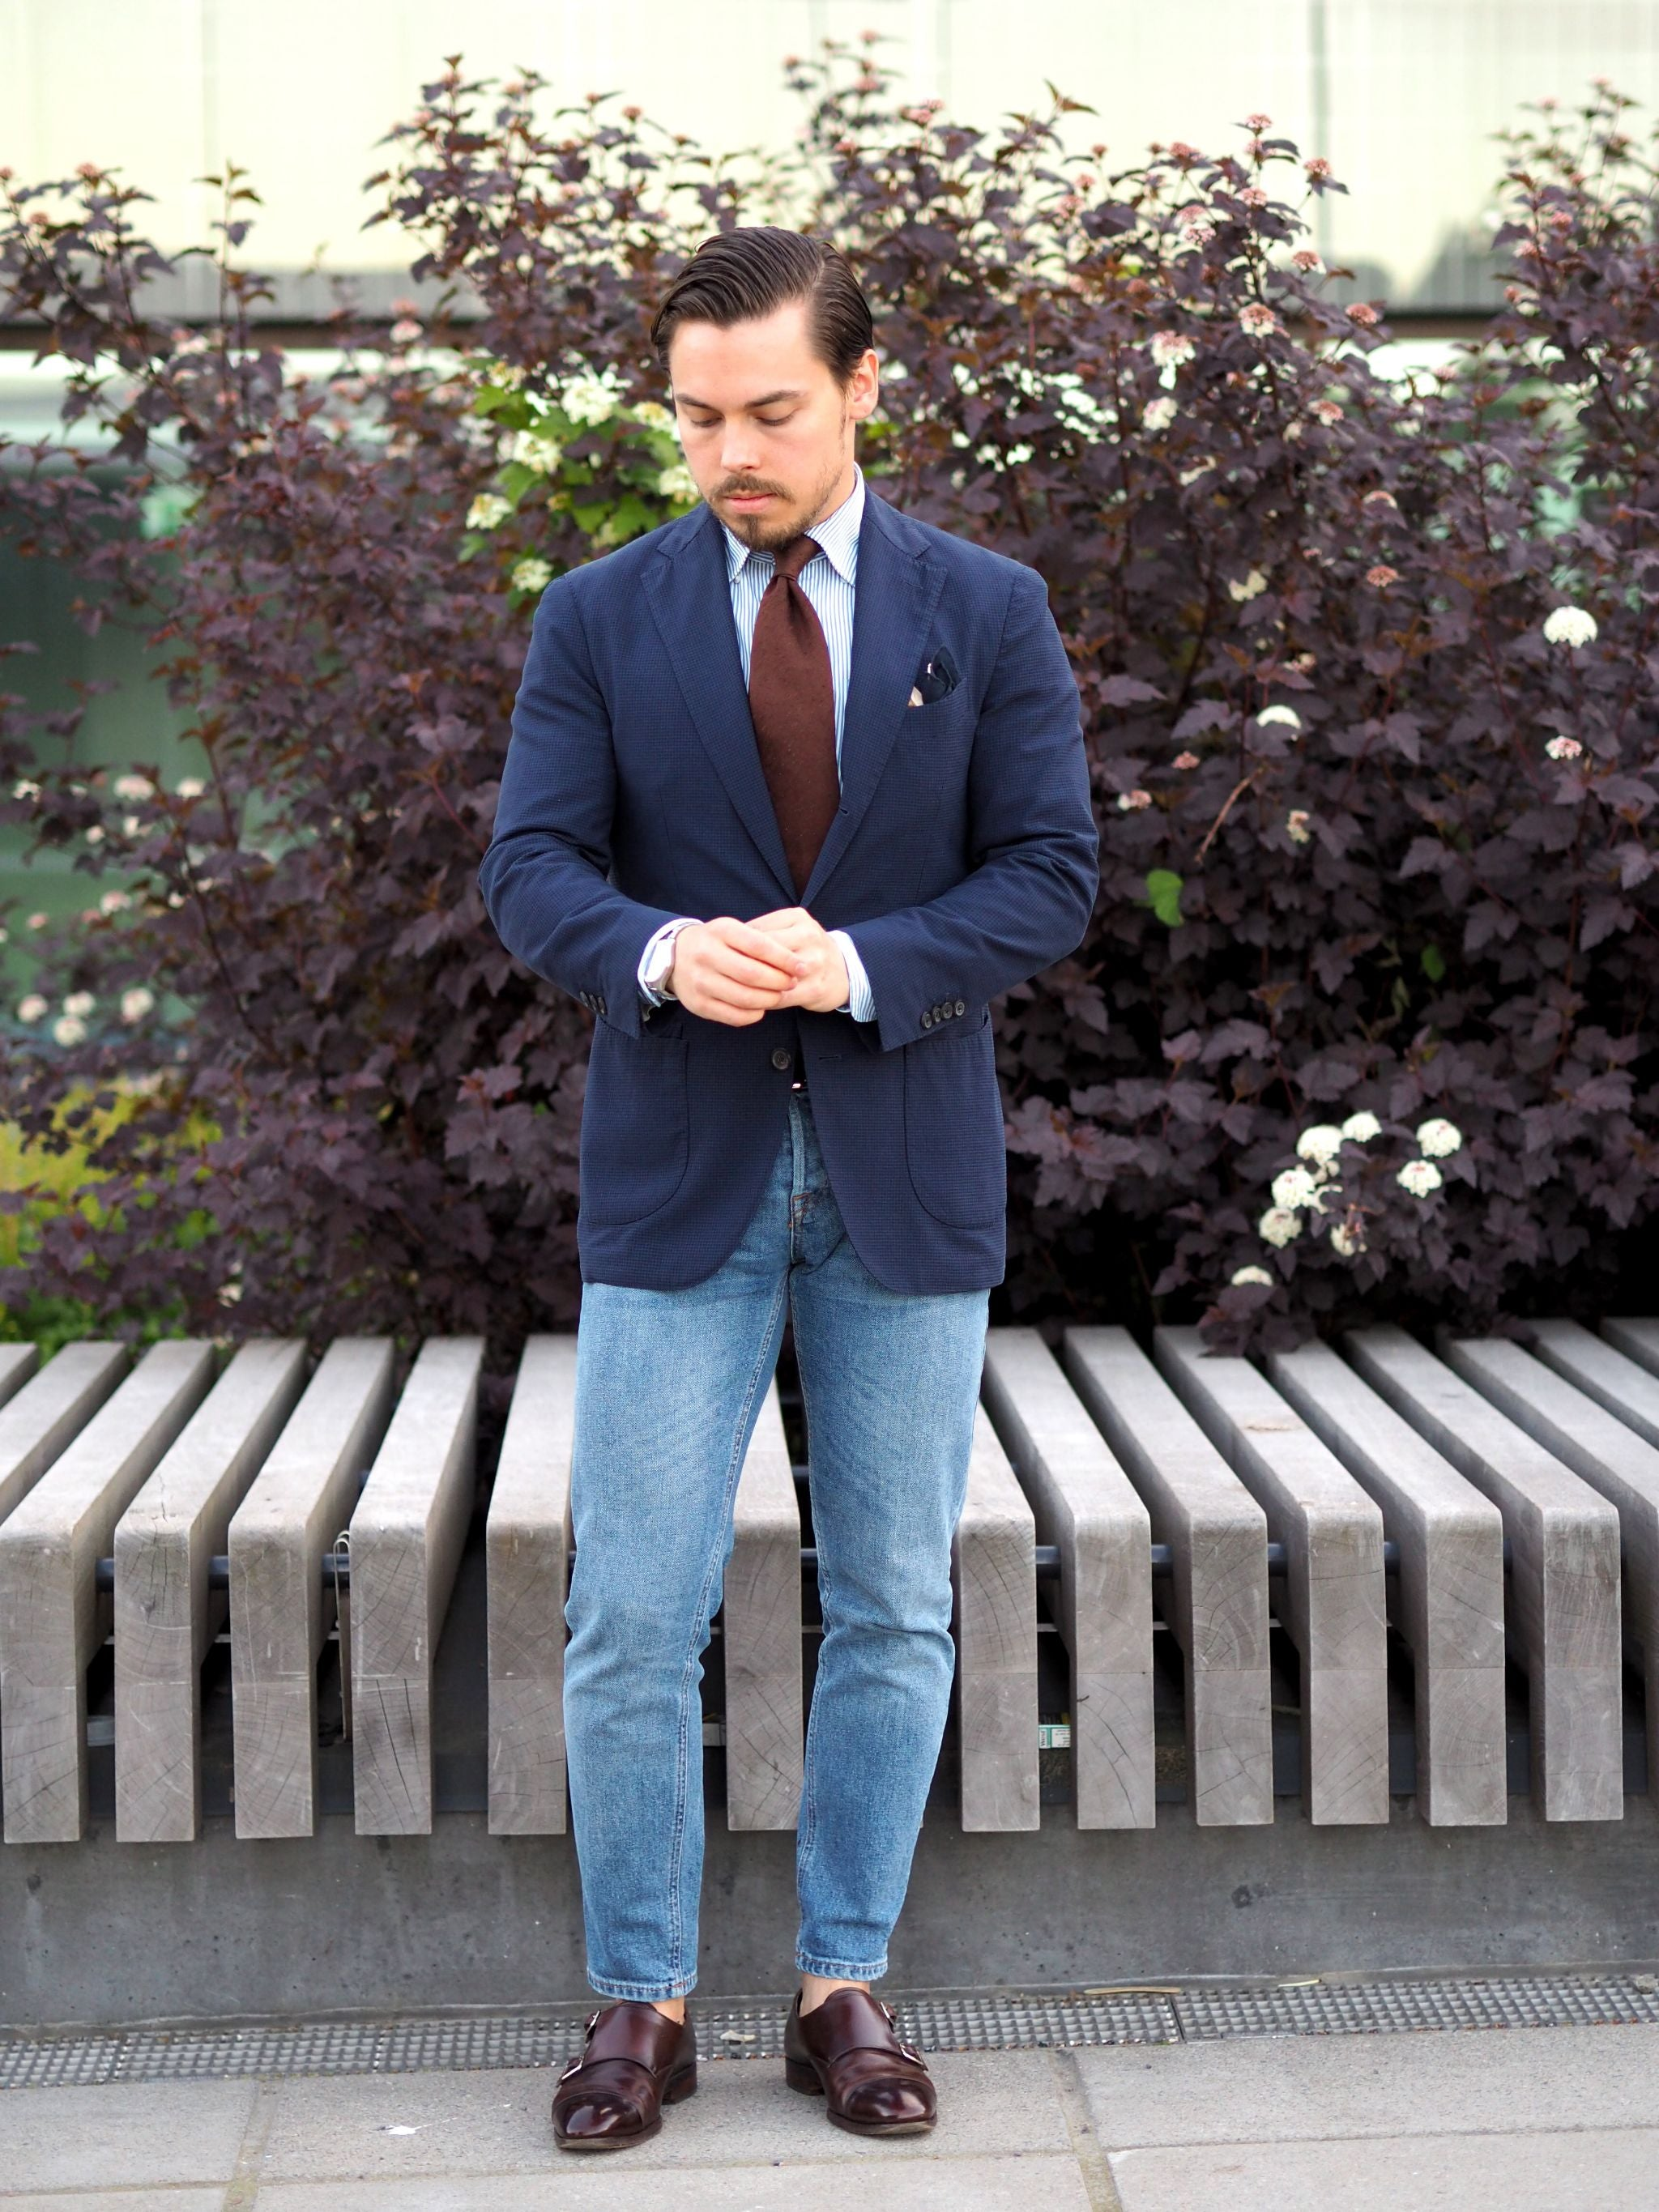 Sport coat with jeans - Casual - yet dressed-up